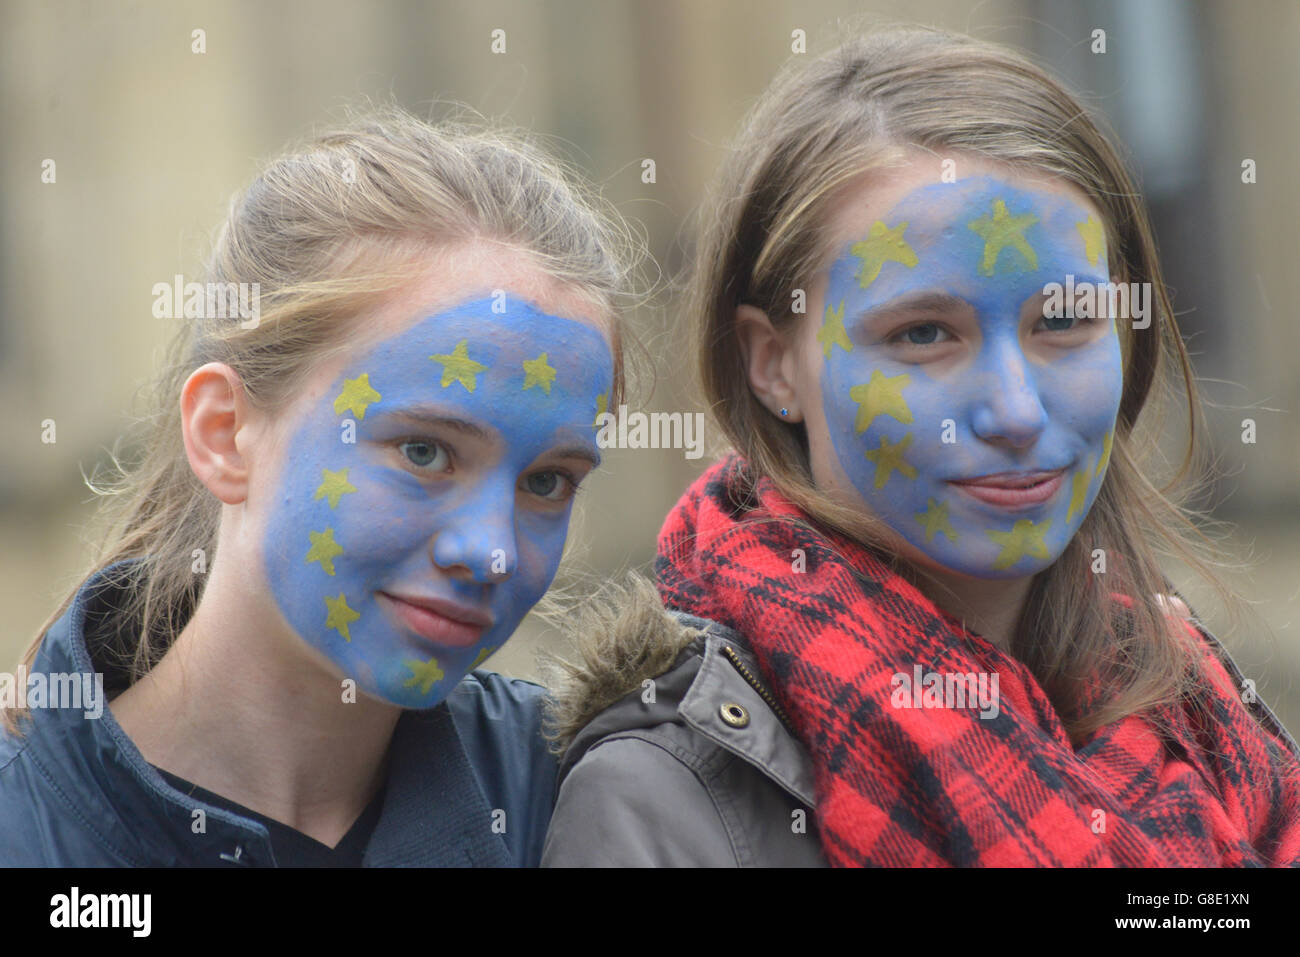 Manchester, UK. 28th June, 2016. People wearing the European Union flag, using facepaint, at the 'Undo Brexit' demonstrtation Stock Photo